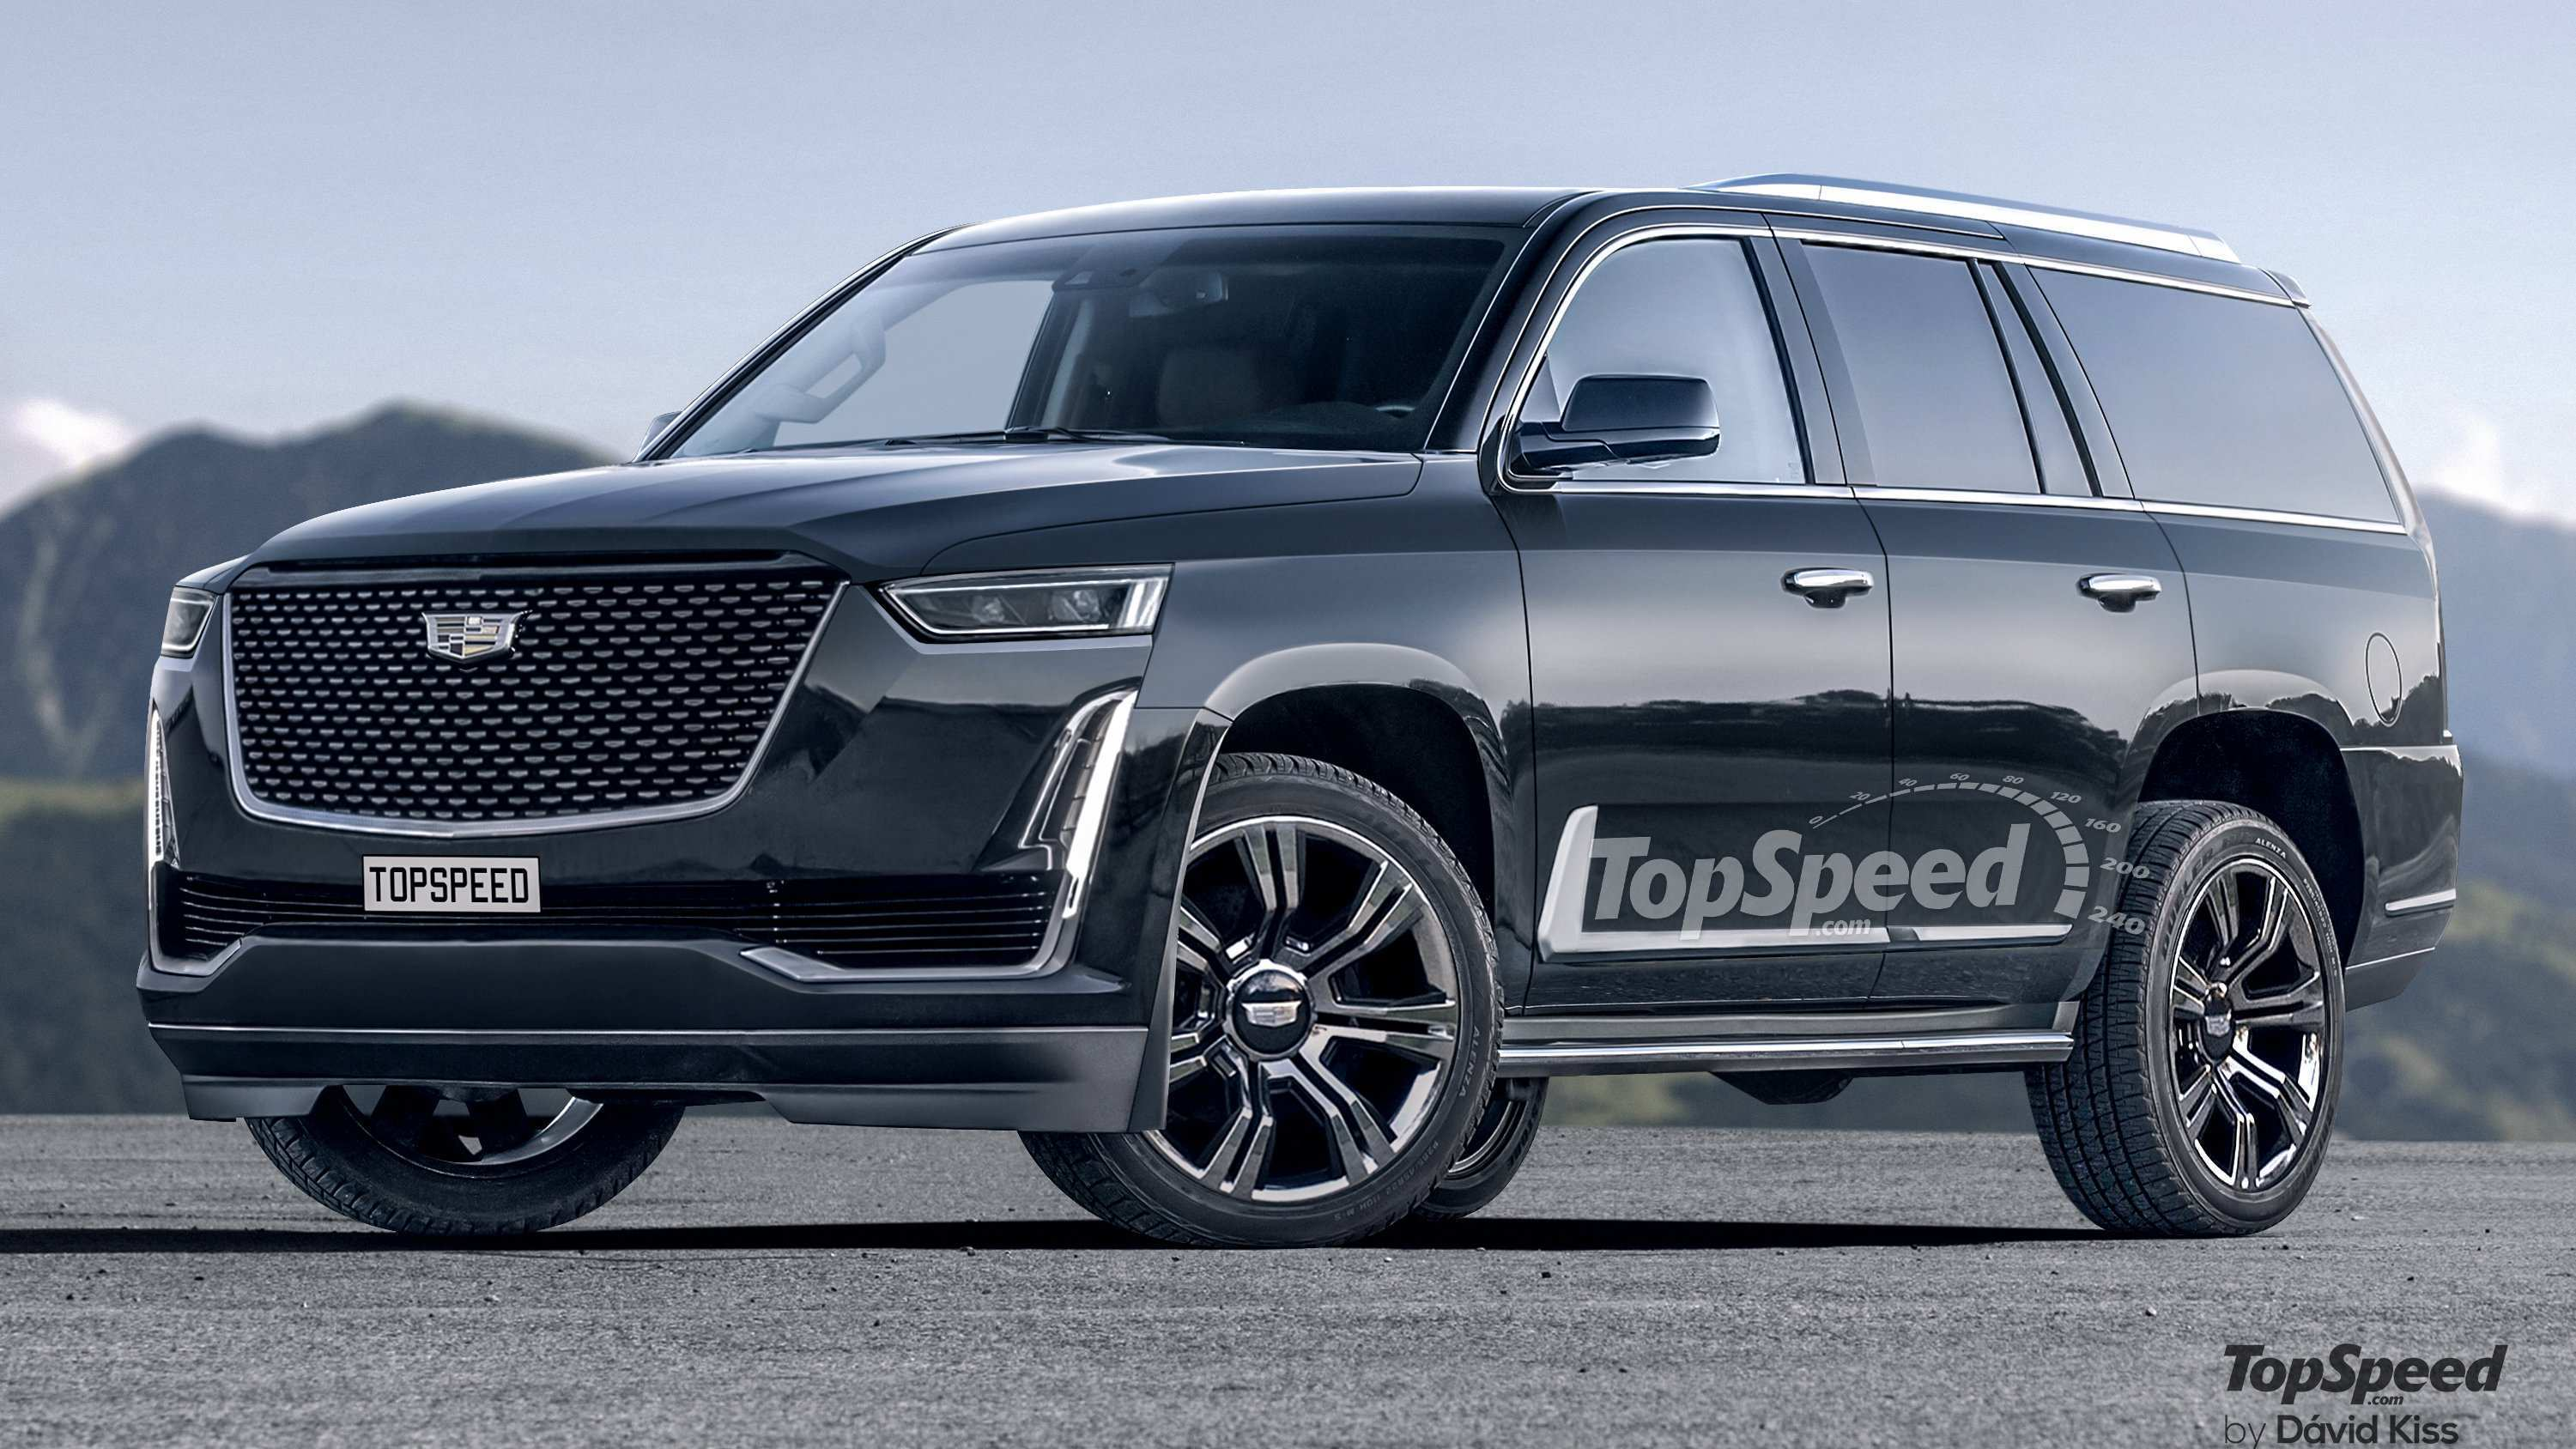 73 New 2020 Cadillac Escalade Images Model